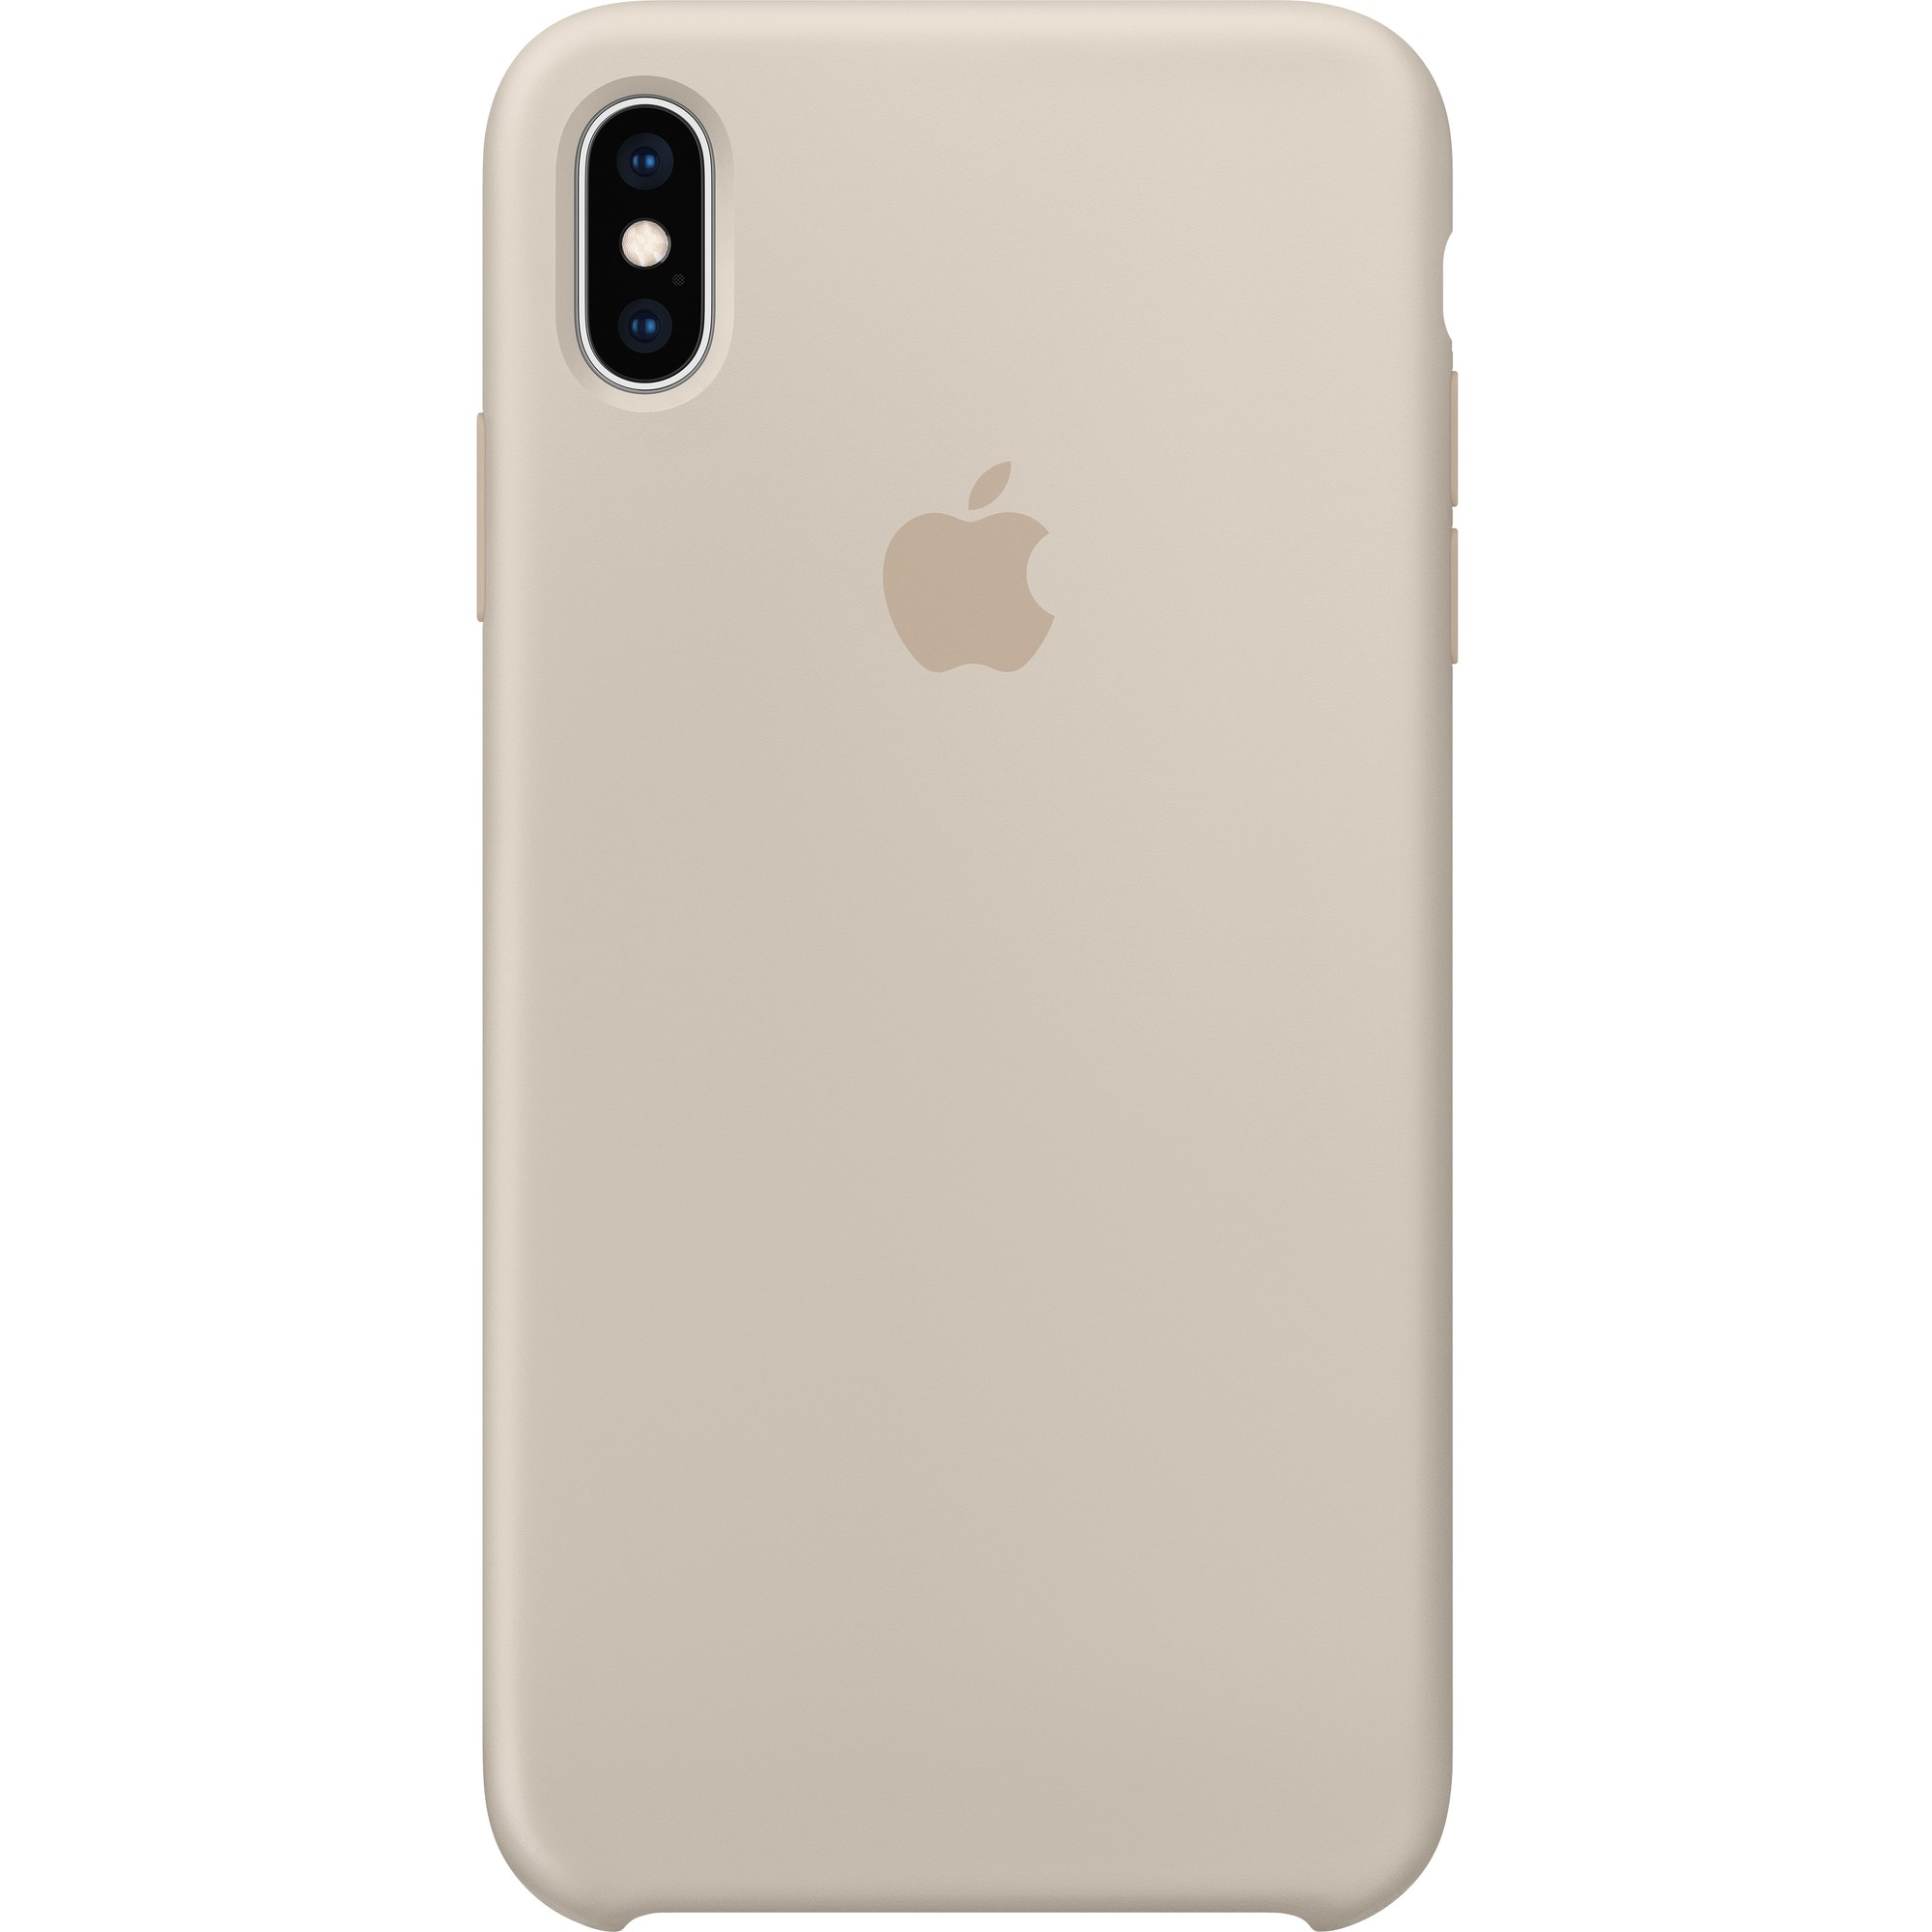 Apple Case for Apple iPhone XS Smartphone - Stone